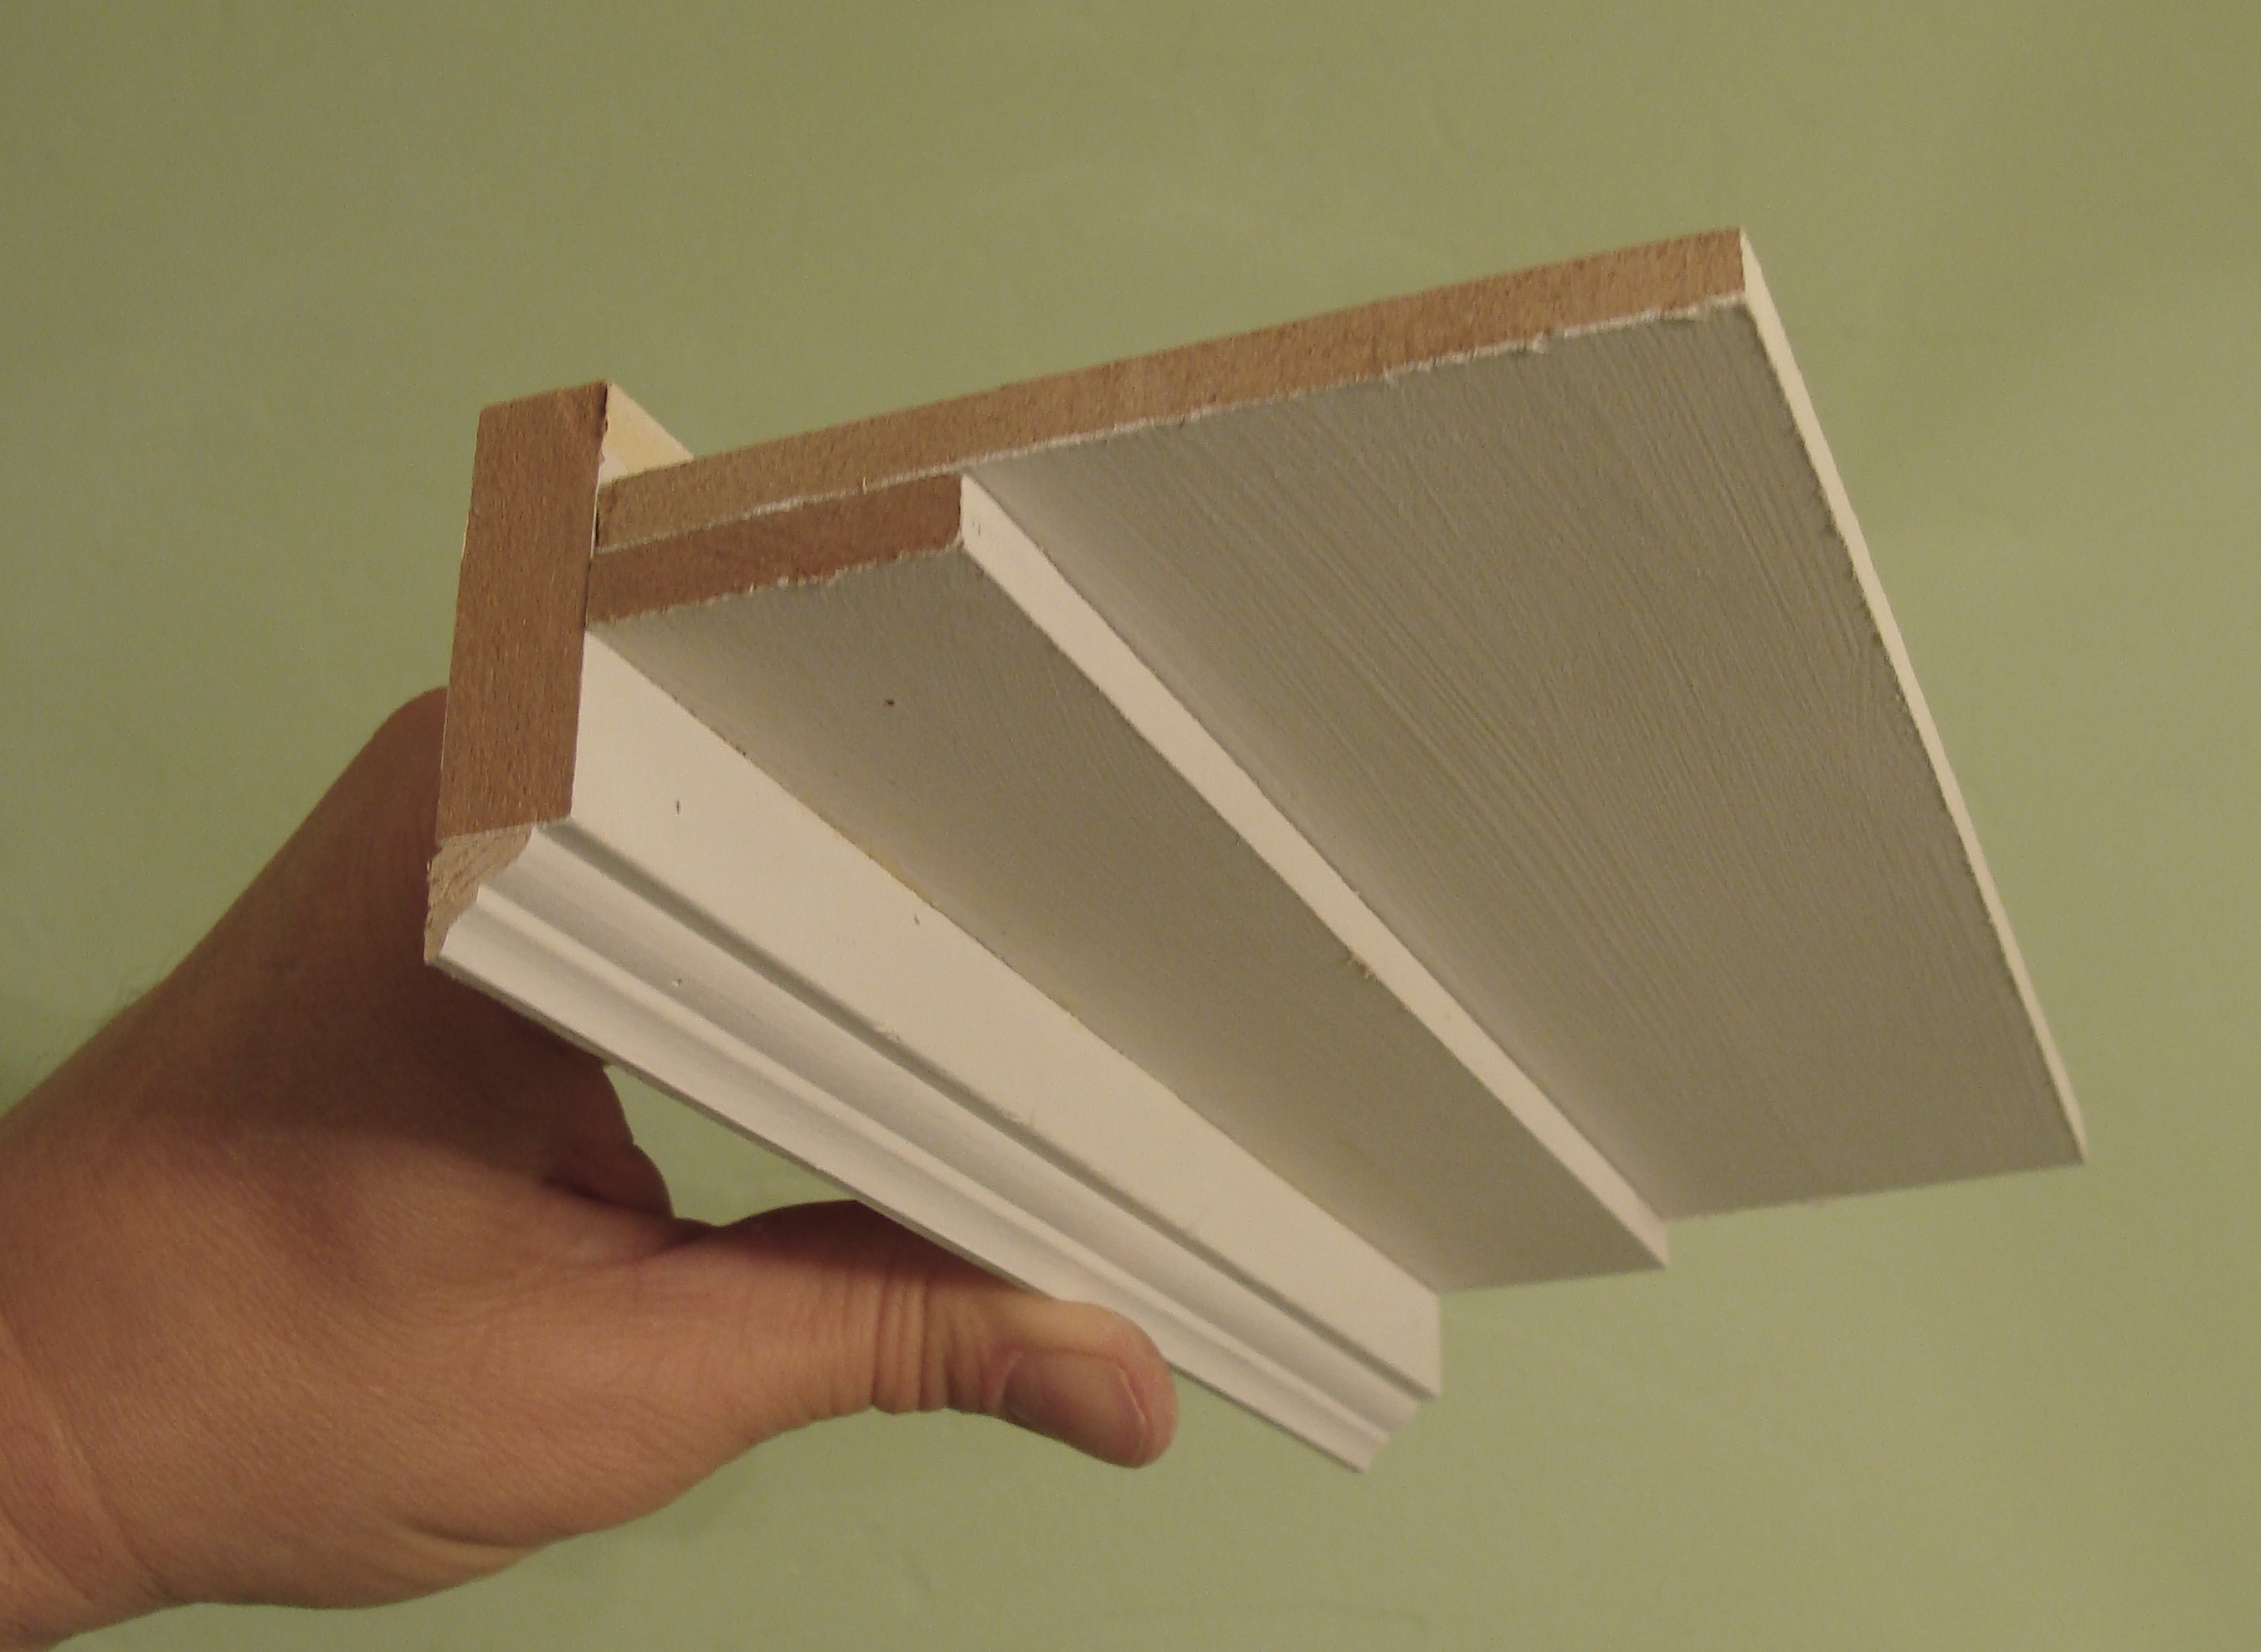 the crown molding model i made based on design elements from our new light fixture